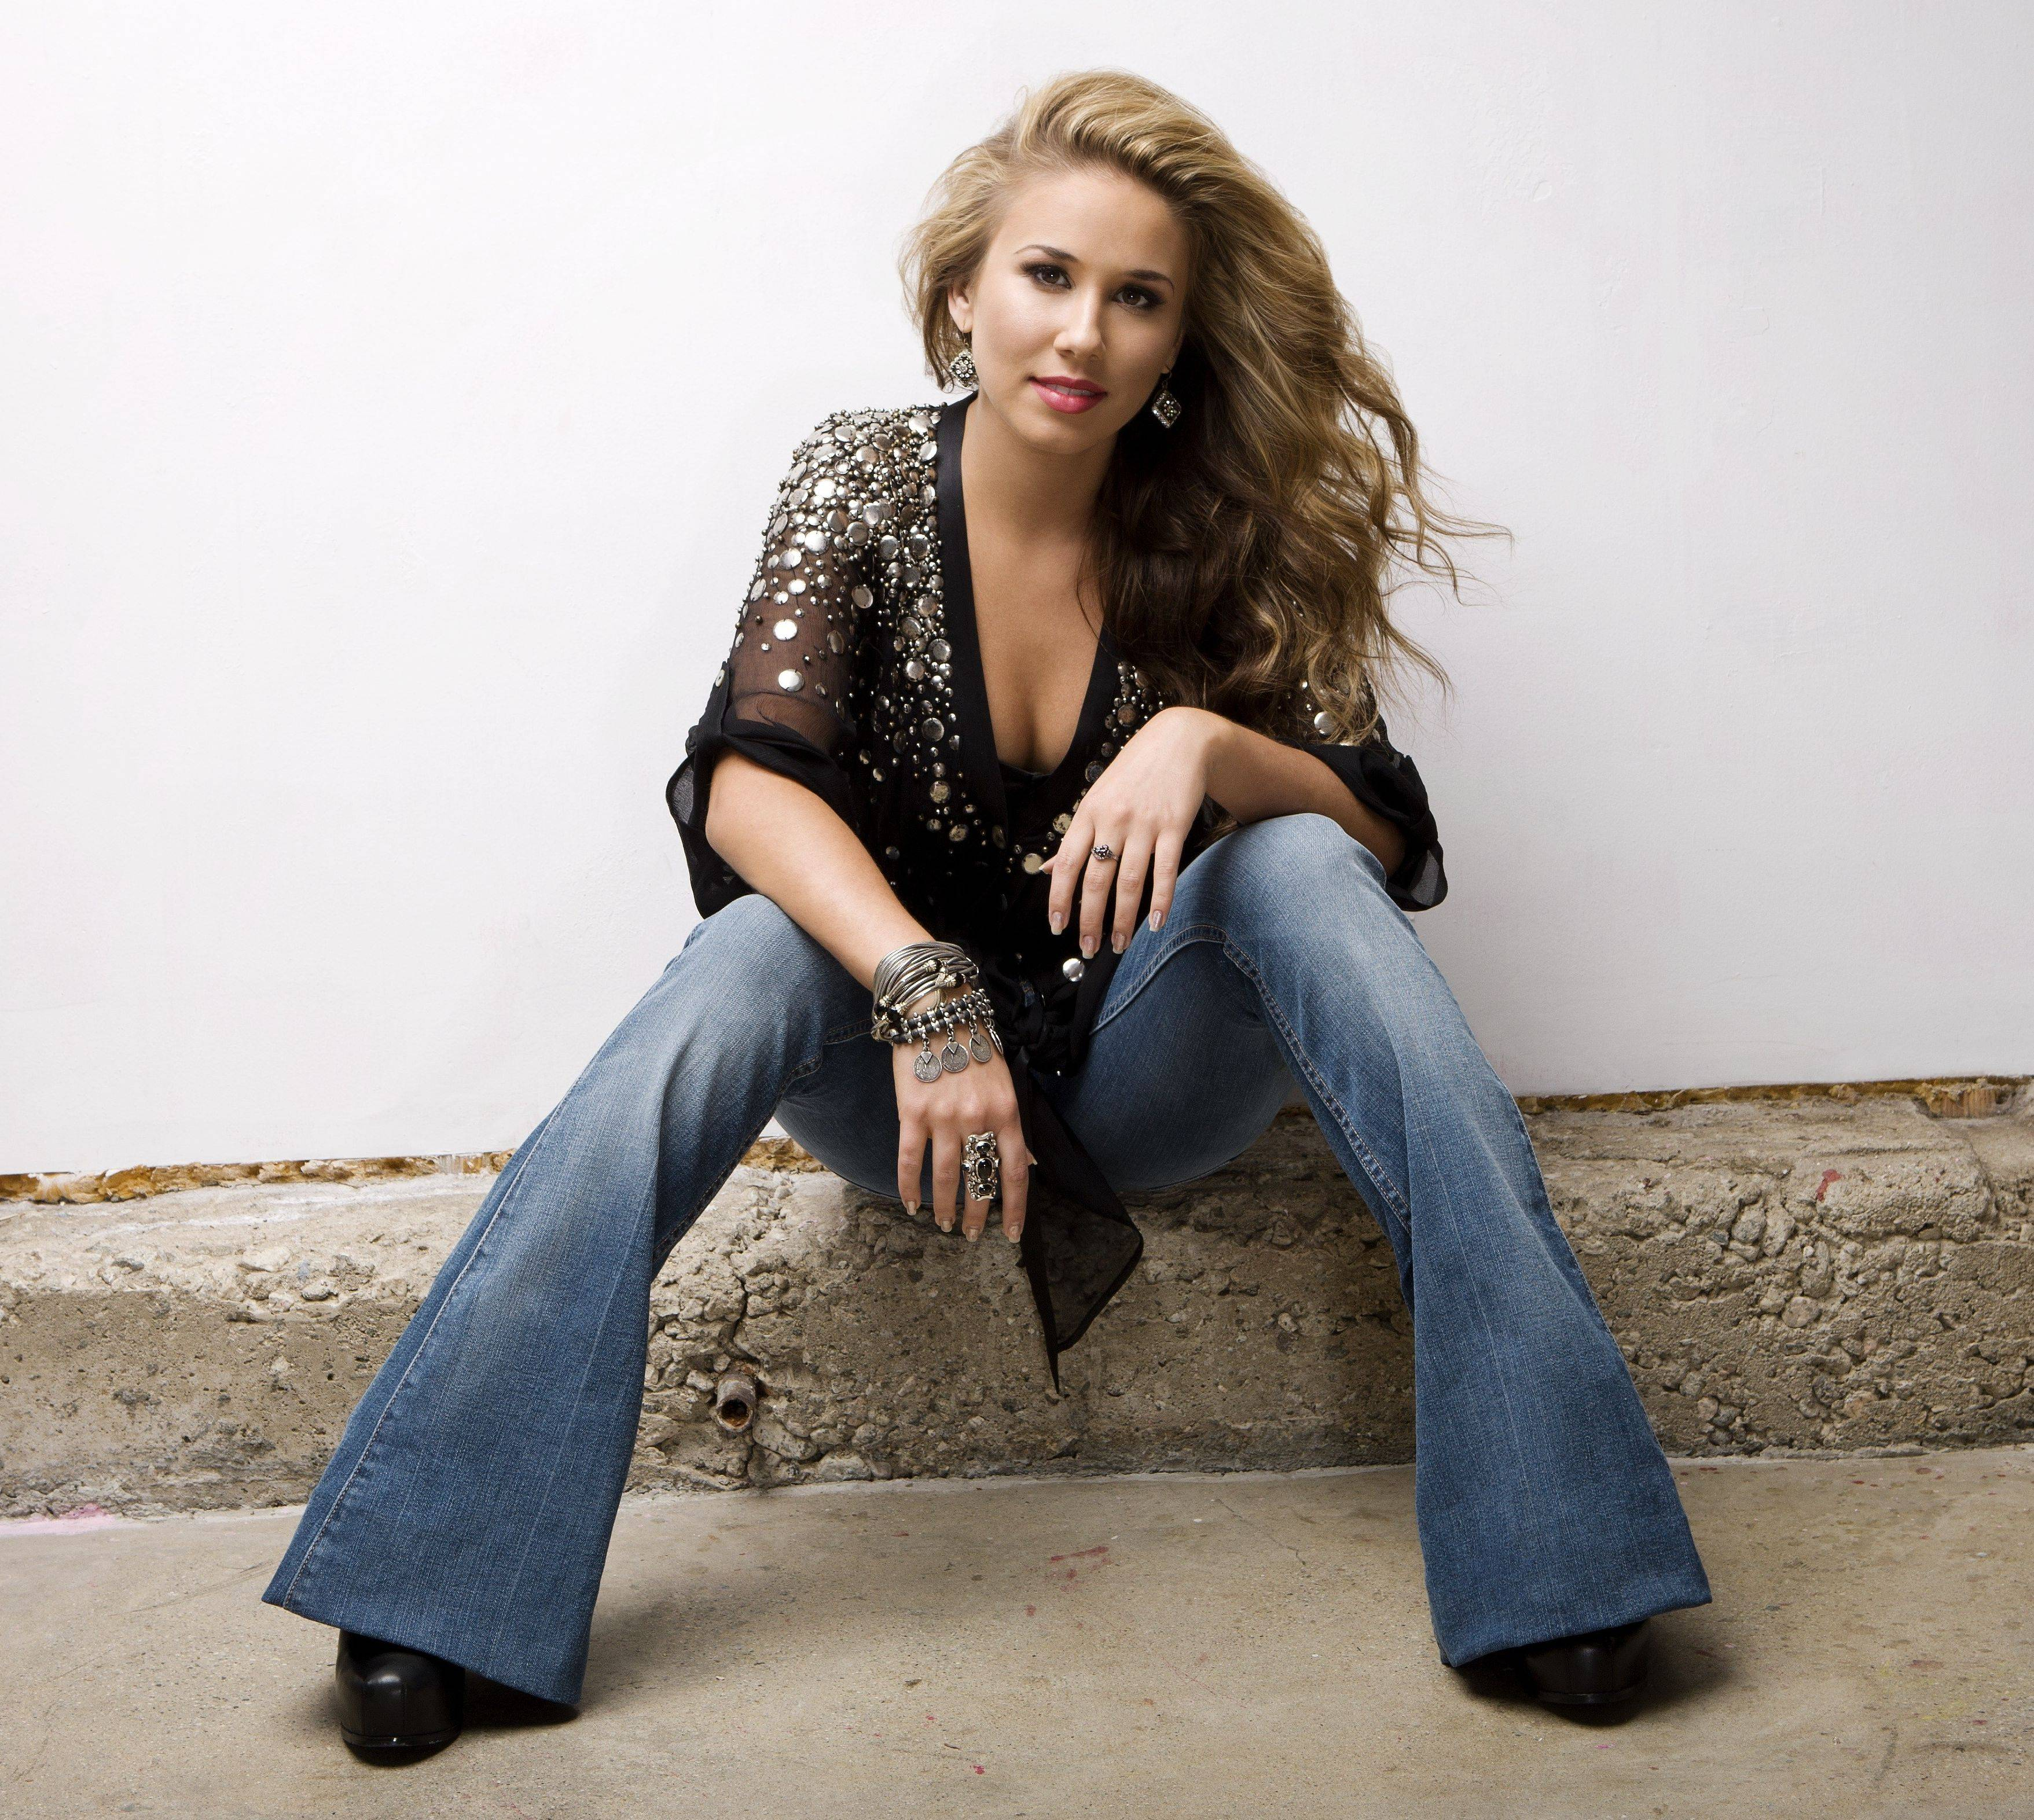 """American Idol's"" Haley Reinhart, Wheeling, has been waiting for her hometown tour date all summer. She will perform Saturday at the Allstate Arena in Rosemont."